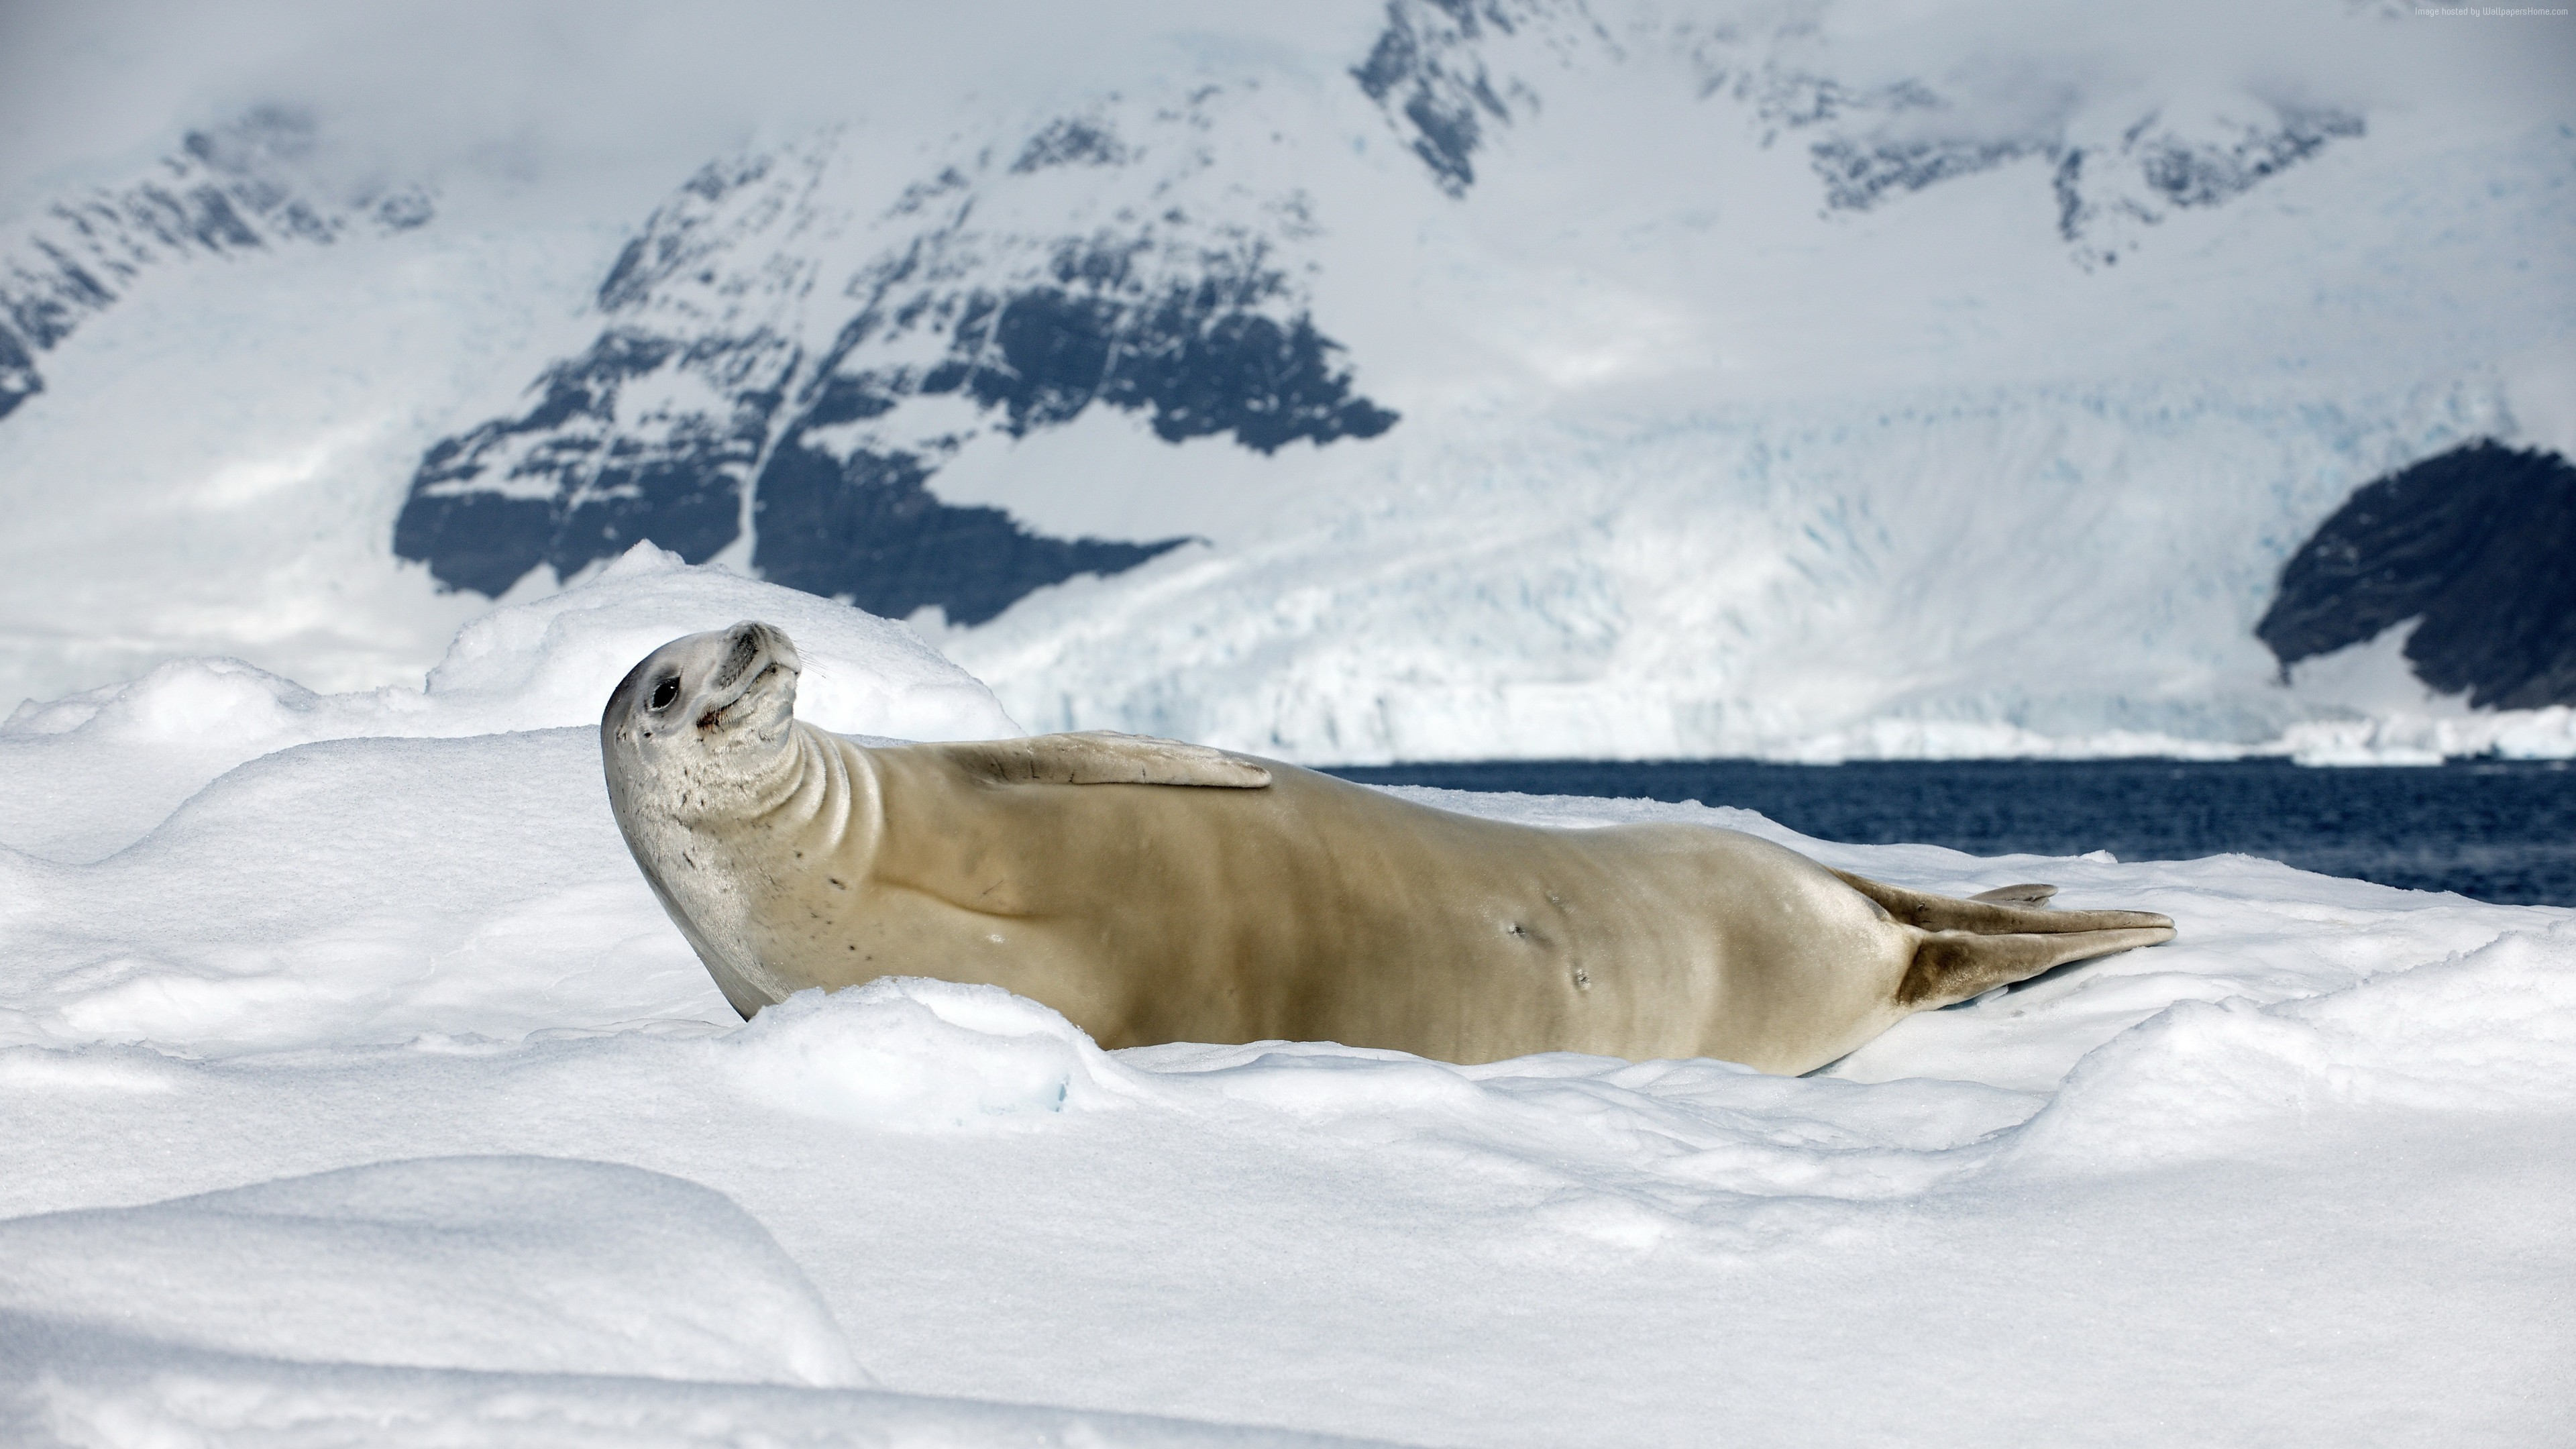 Wallpaper Crabeater seal, sea calf, Antarctica, snow, sunny day, animal, smile, Animals